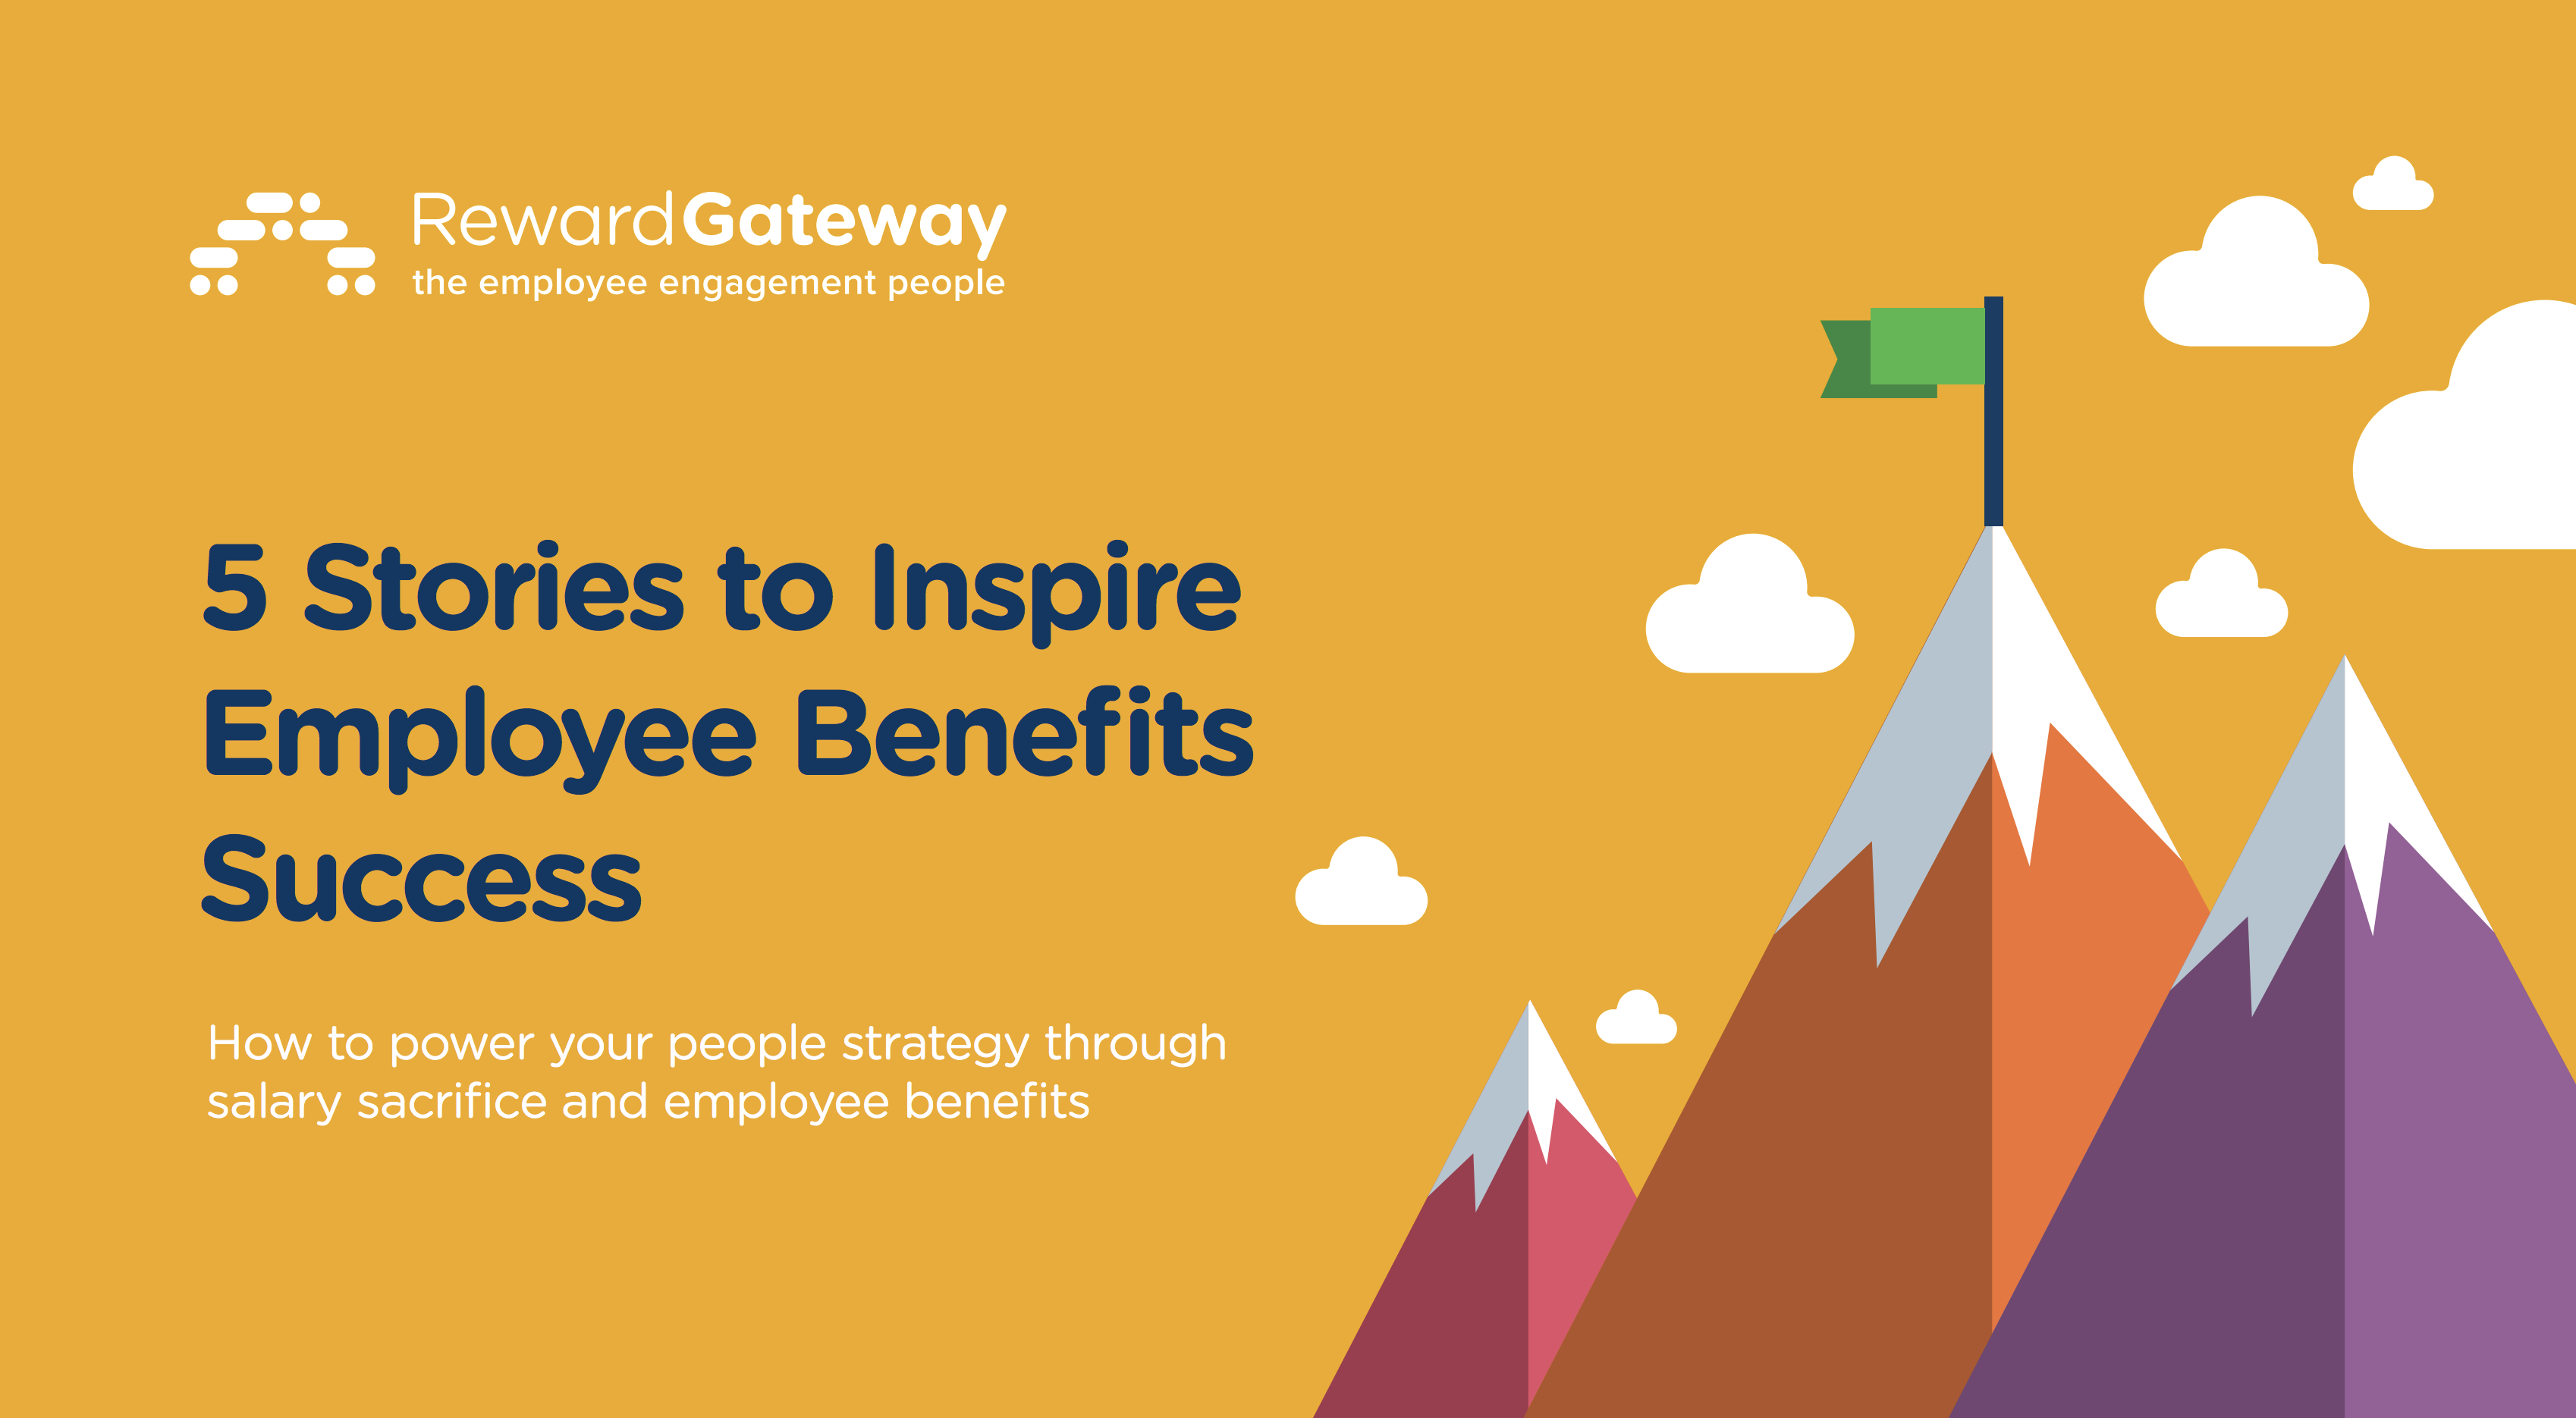 5 Stories to Inspire Employee Benefits Success